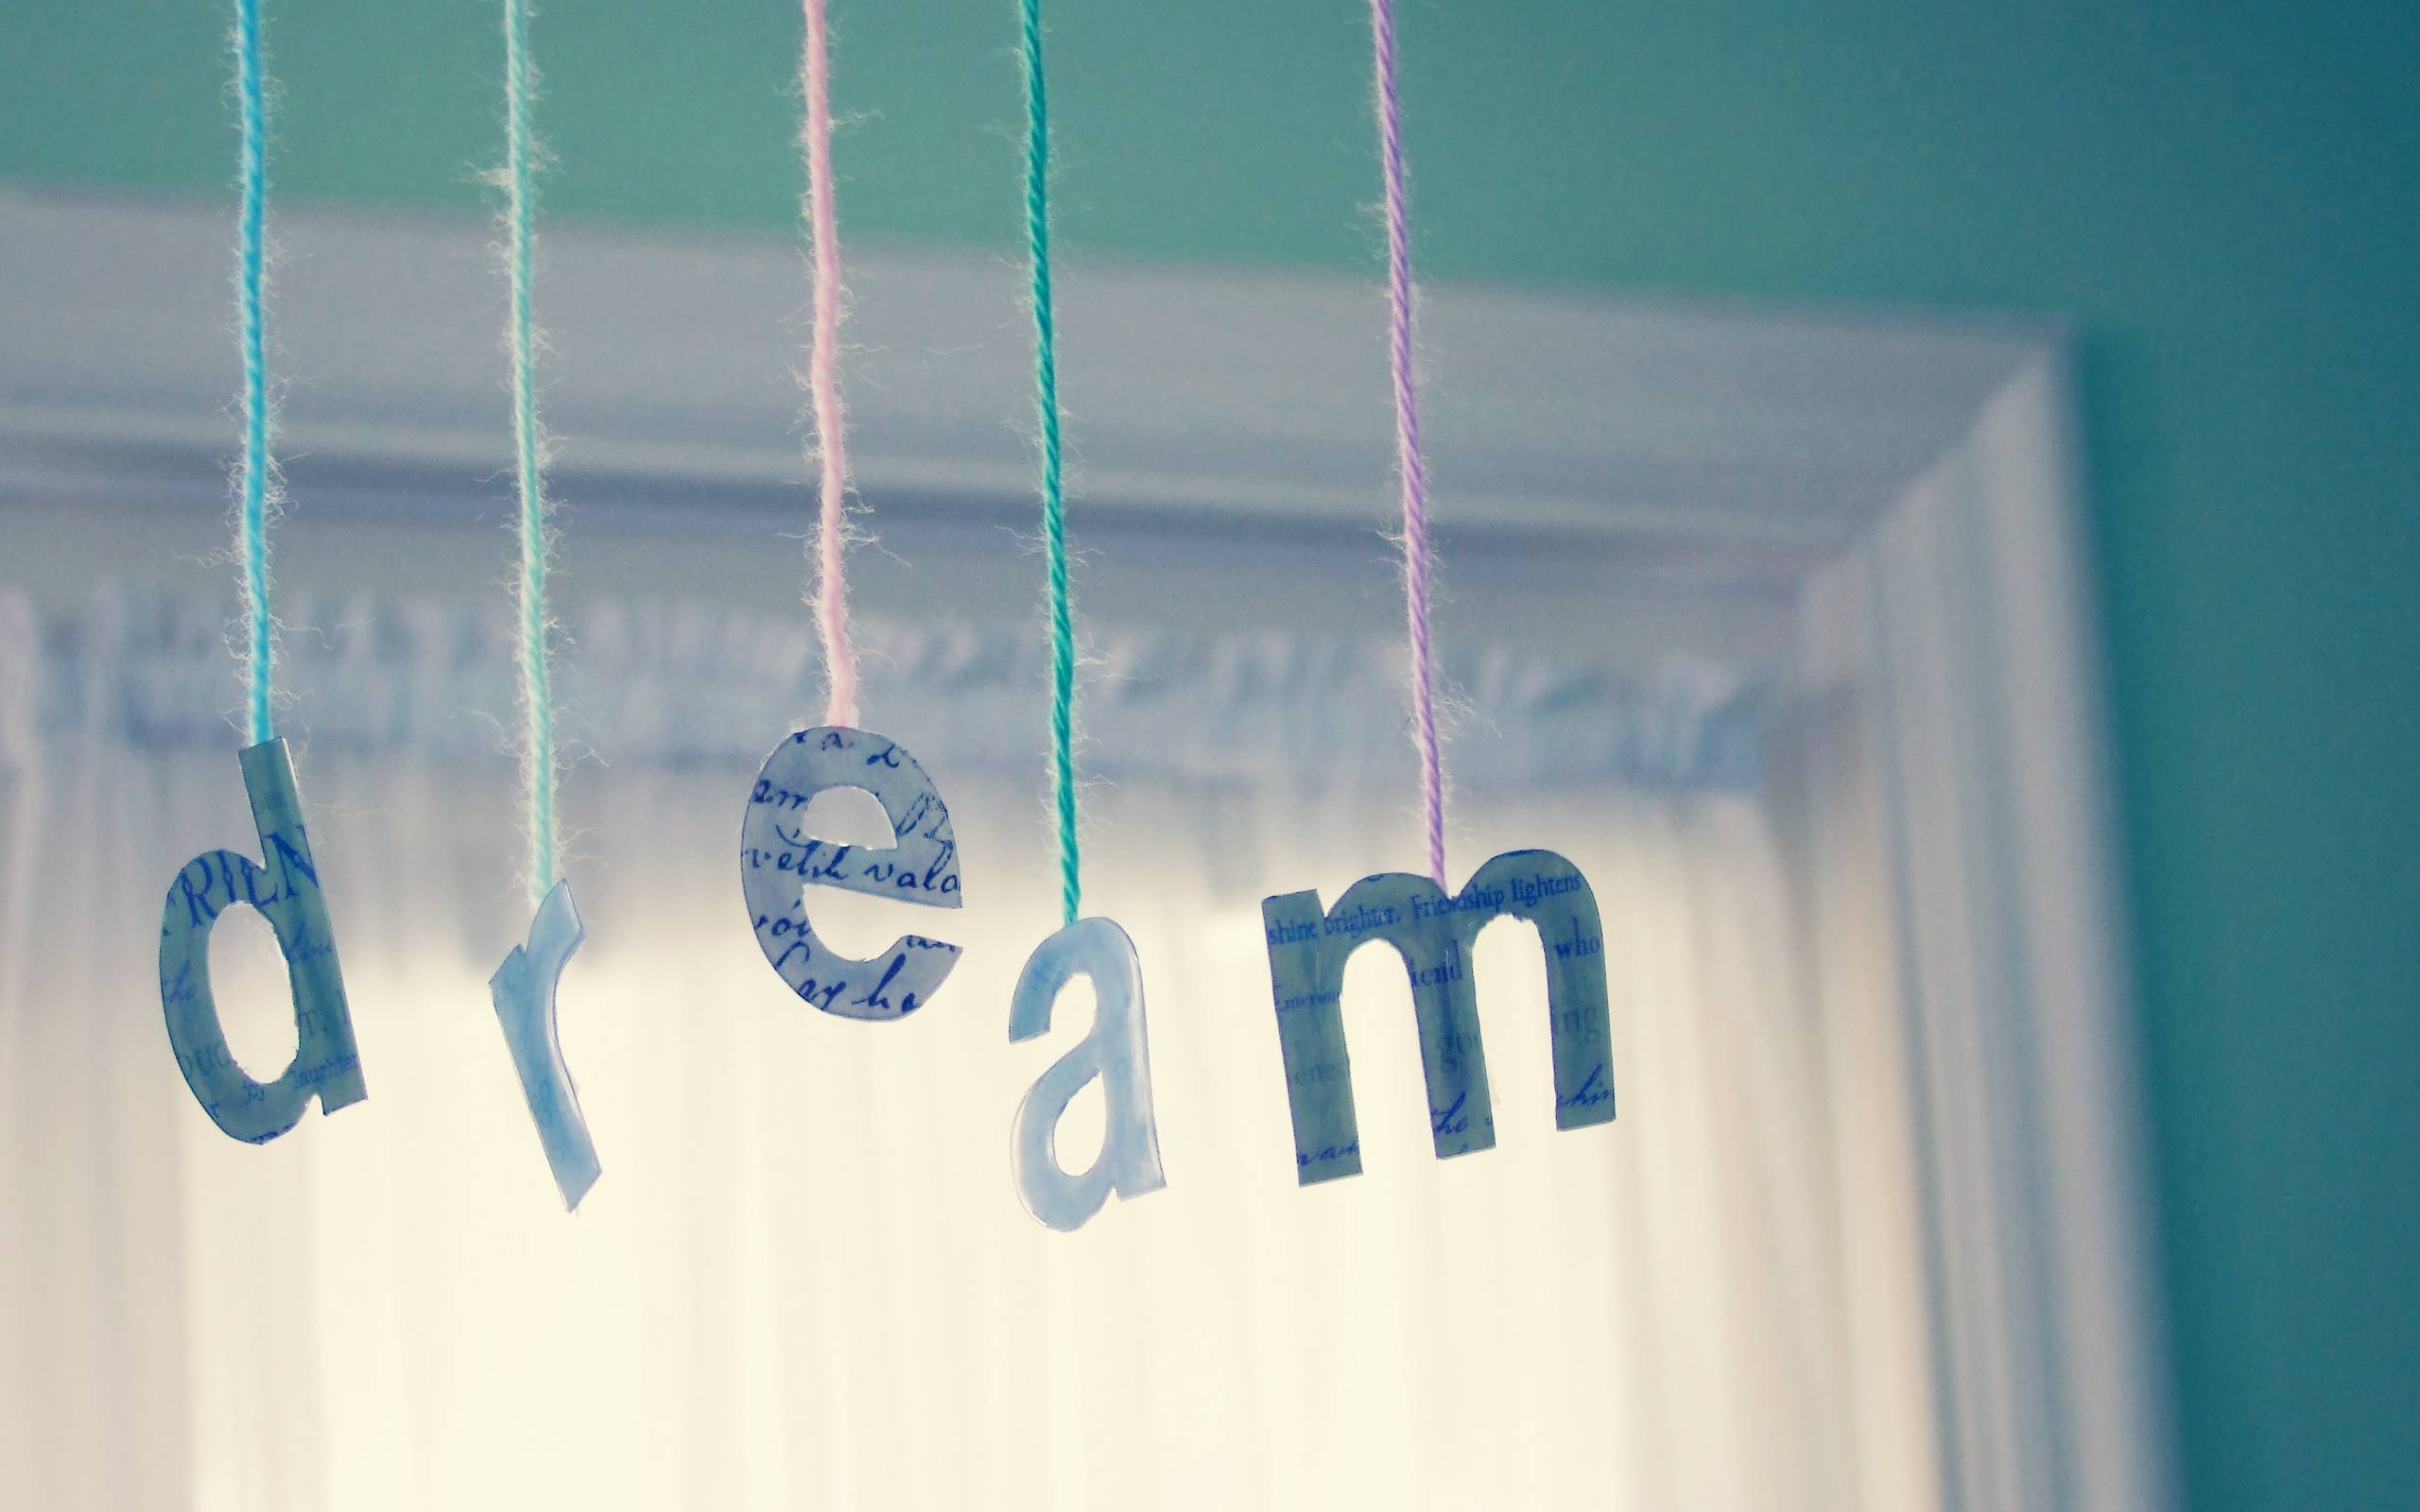 wallpaper on dreamers - photo #20